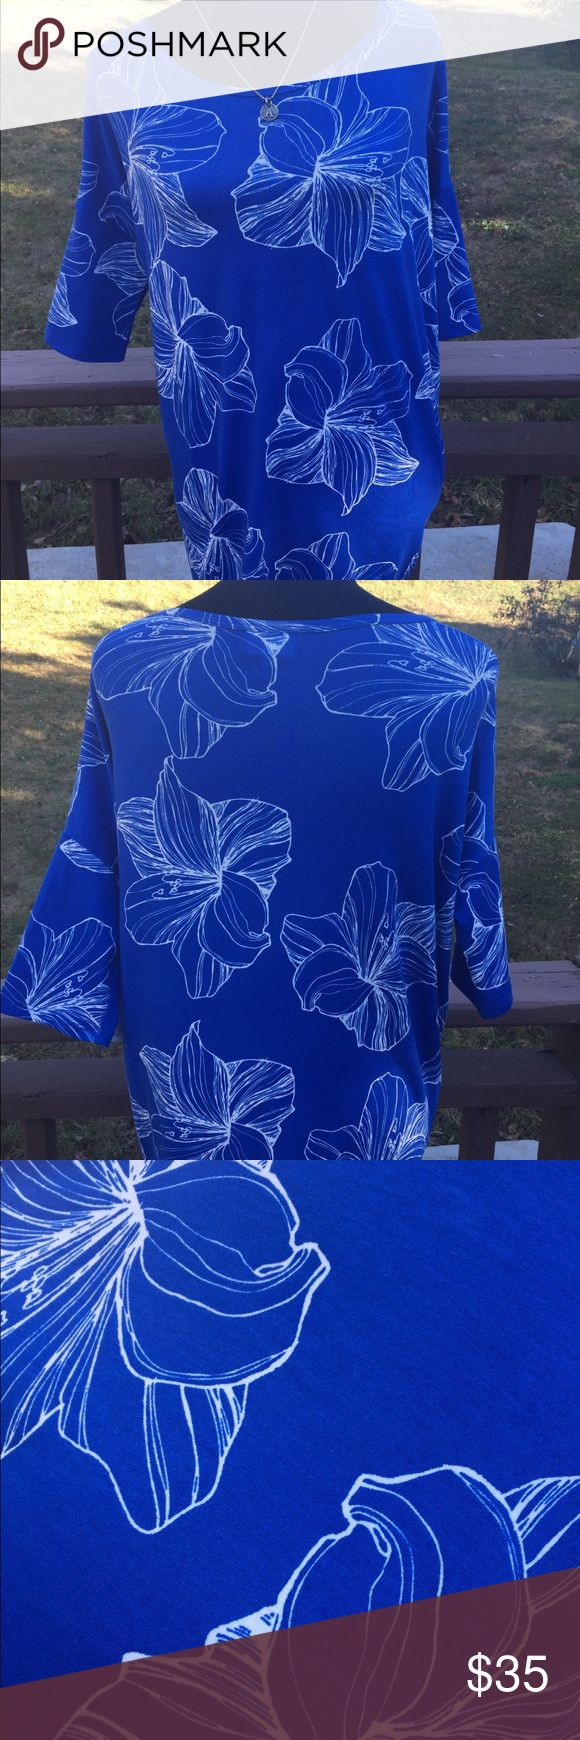 Lularoe blue and white flower Irma NWT really pretty blue and white flower Lularoe Irma, great to dress up with a pair of white jeans, dress it  up or down for a date night or work, necklace not included, pet/smoke feee Home LuLaRoe Tops Tees - Short Sleeve